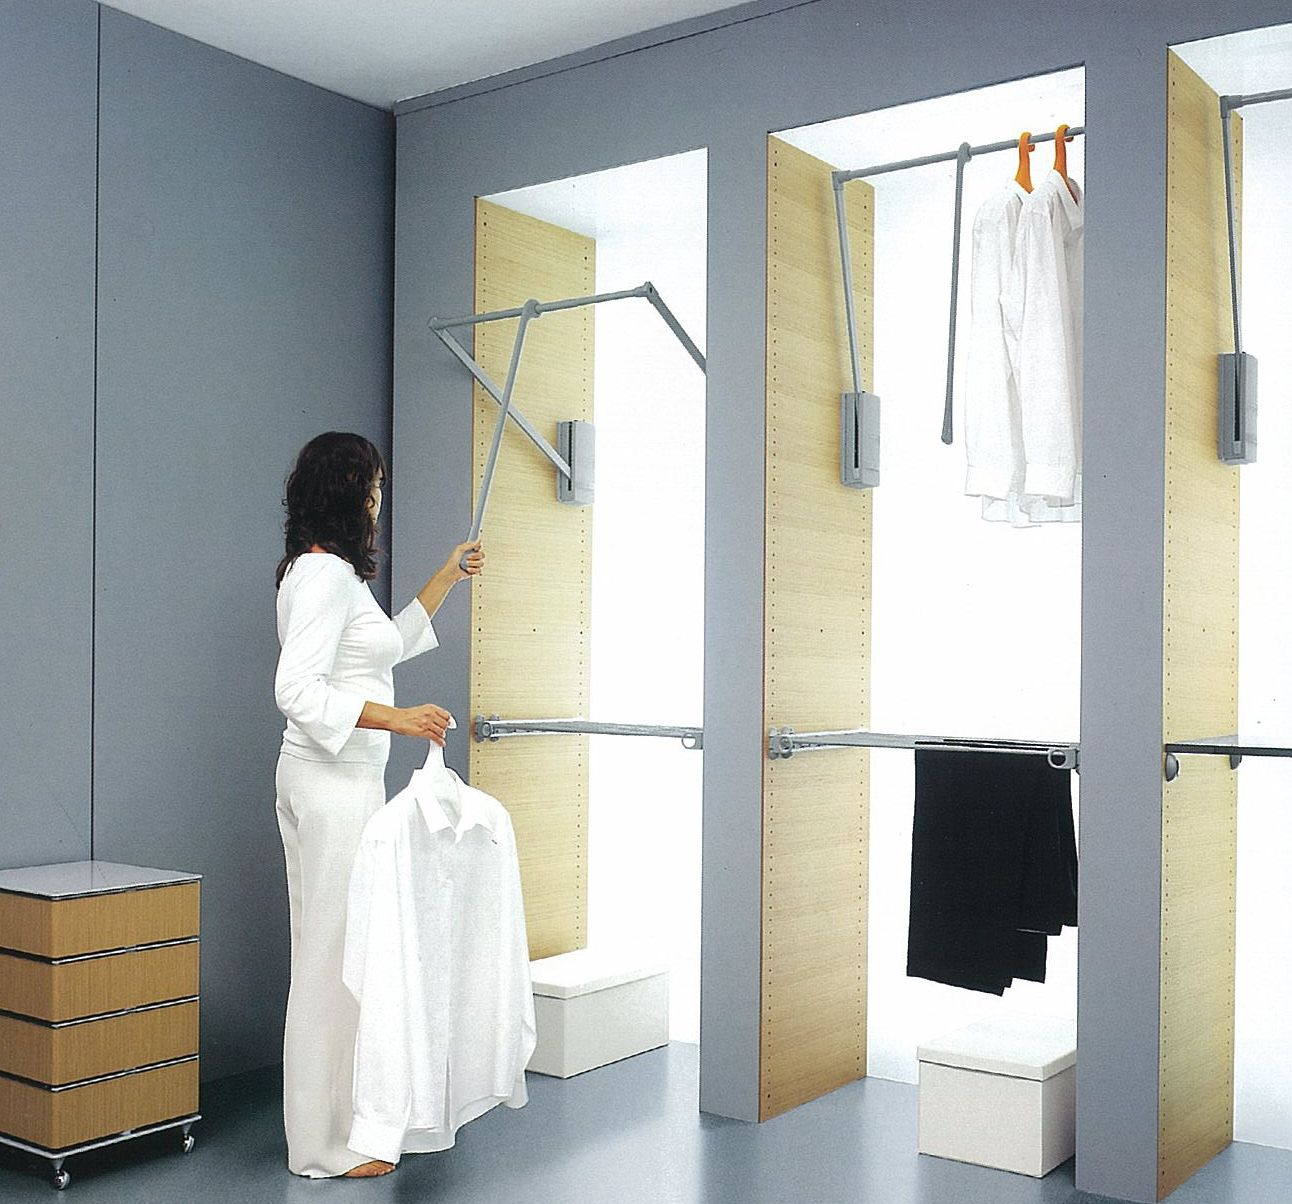 Pull-down hanging rail in full height built-in wardrobe ...